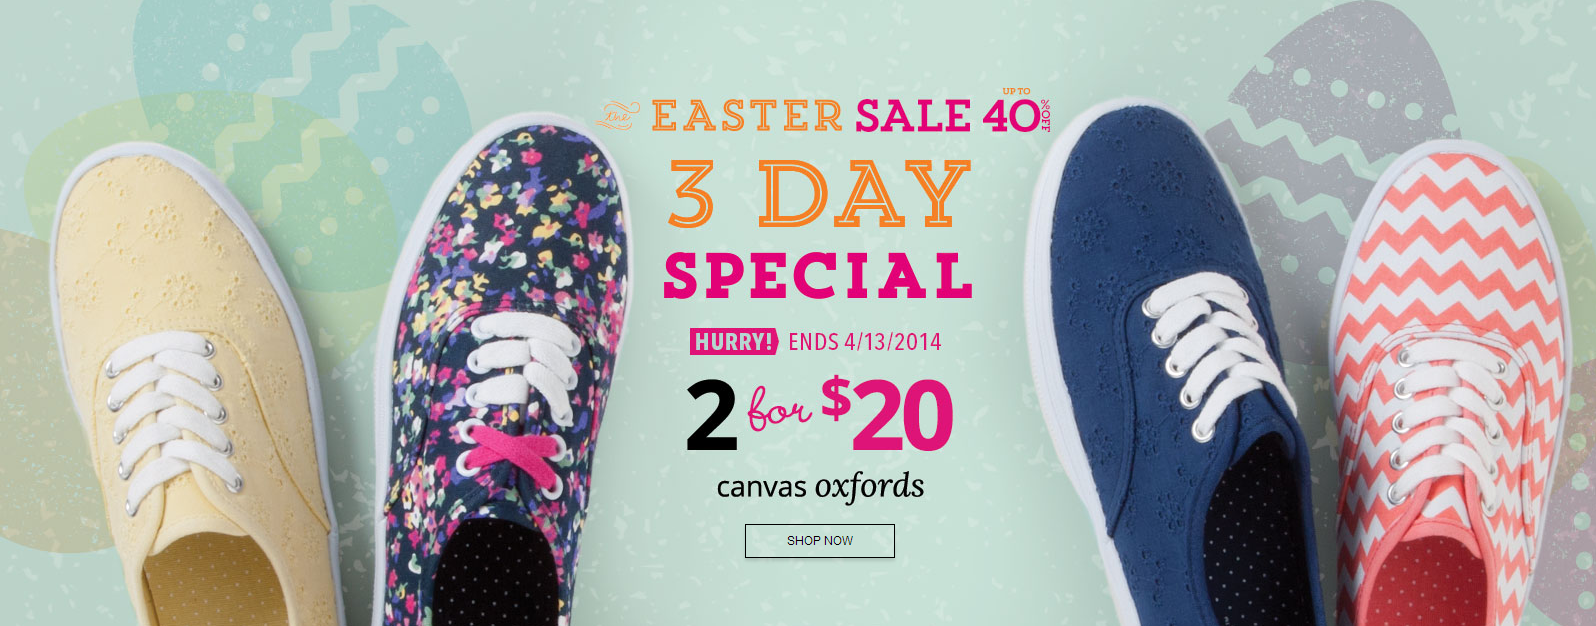 discounts for payless shoe source